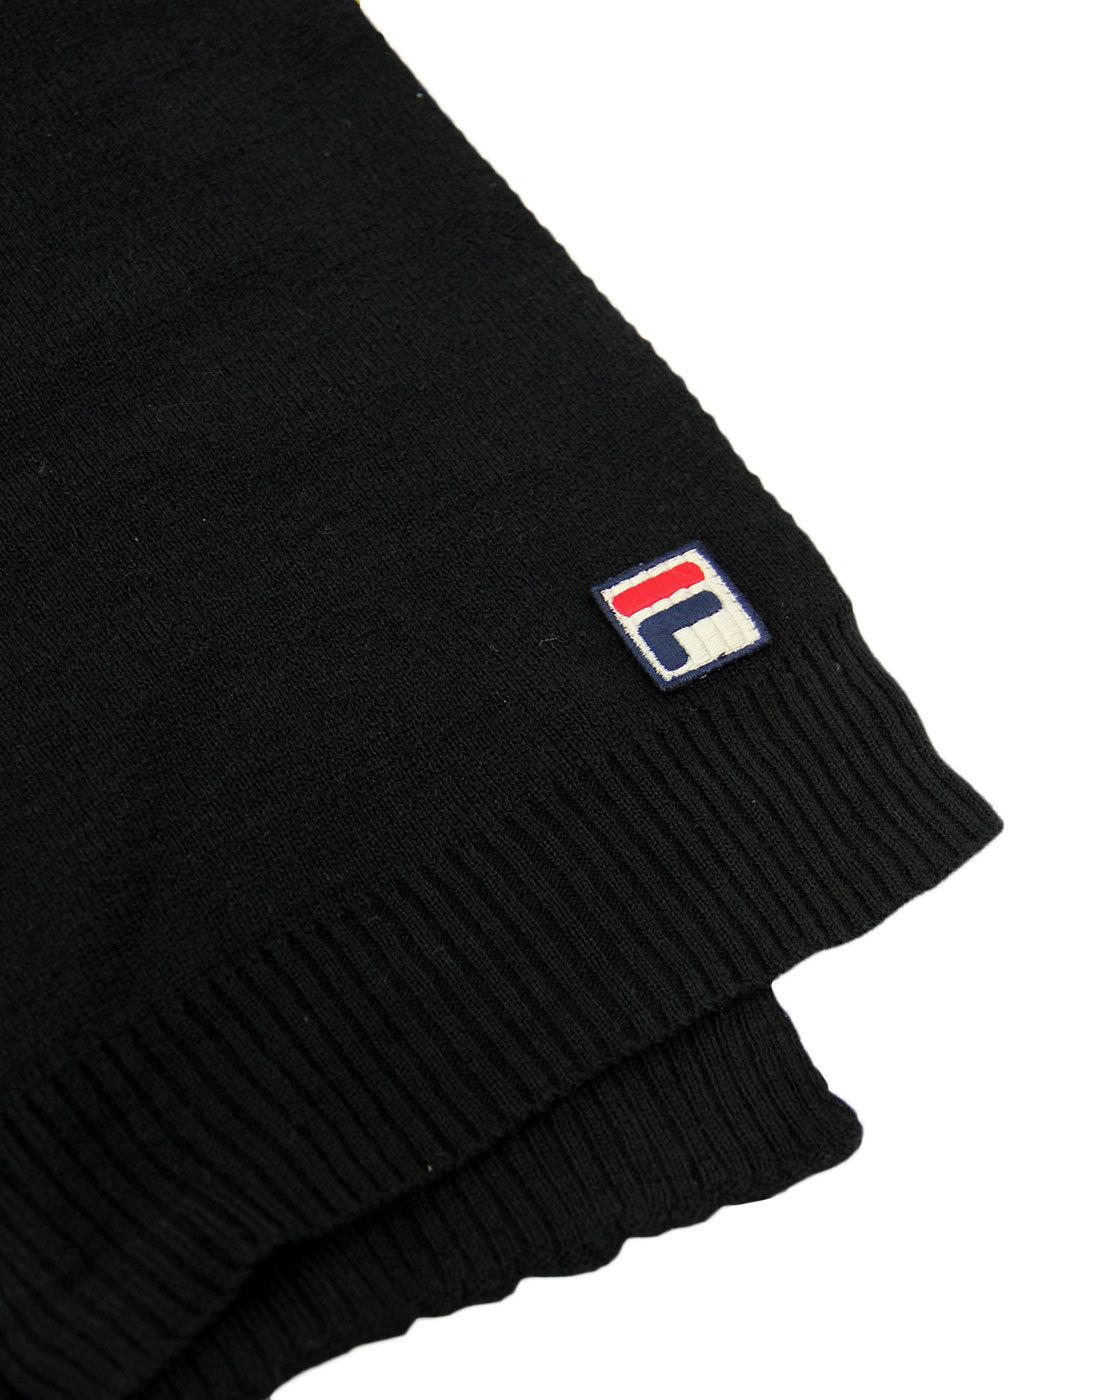 0bb1fdf4 FILA VINTAGE Righi Retro 1980s Ribbed End Knitted Scarf in Black